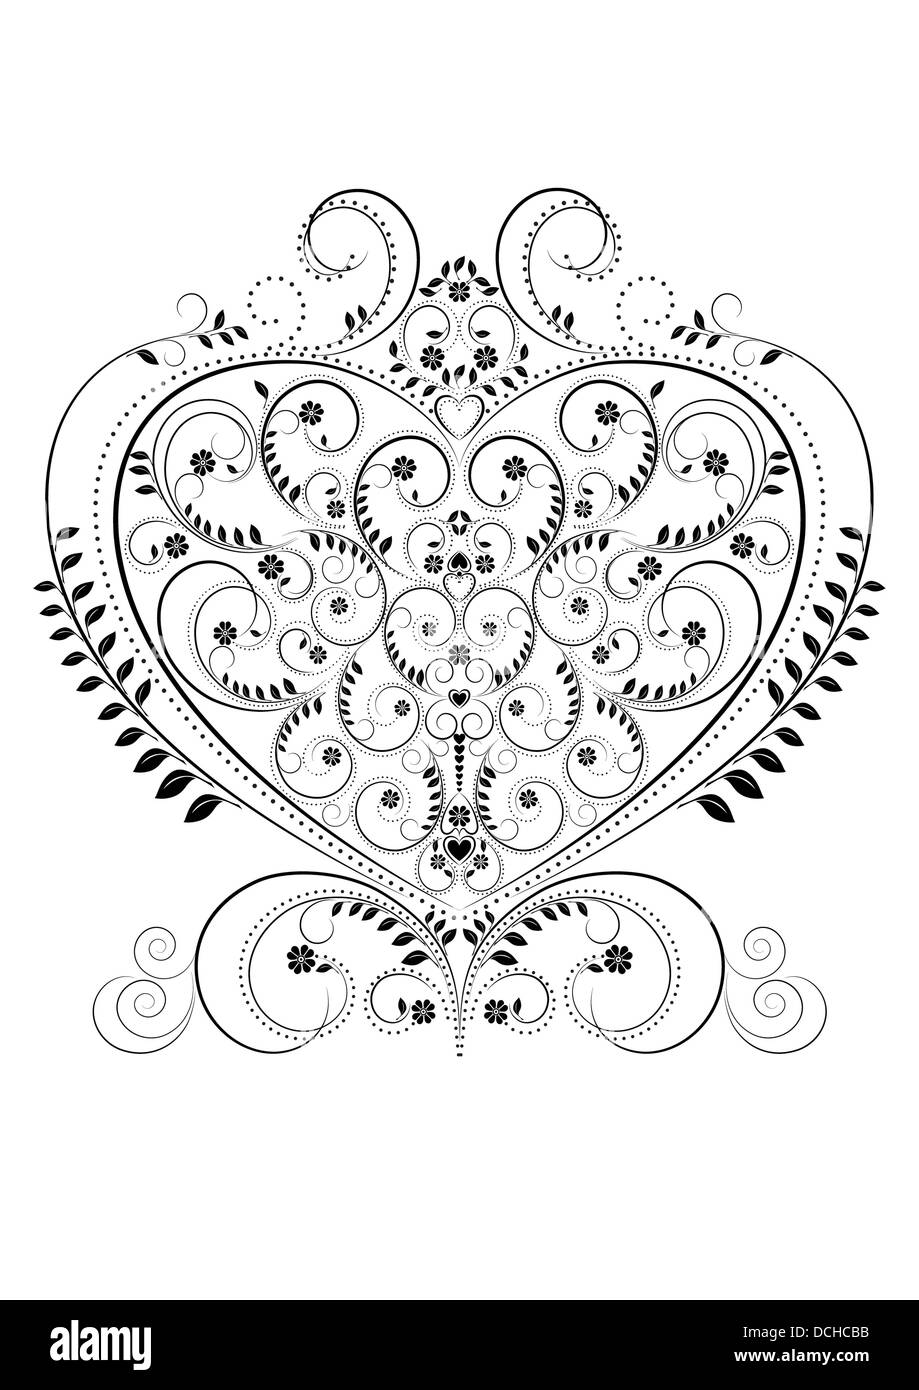 Openwork pattern in the form of heart - Stock Image